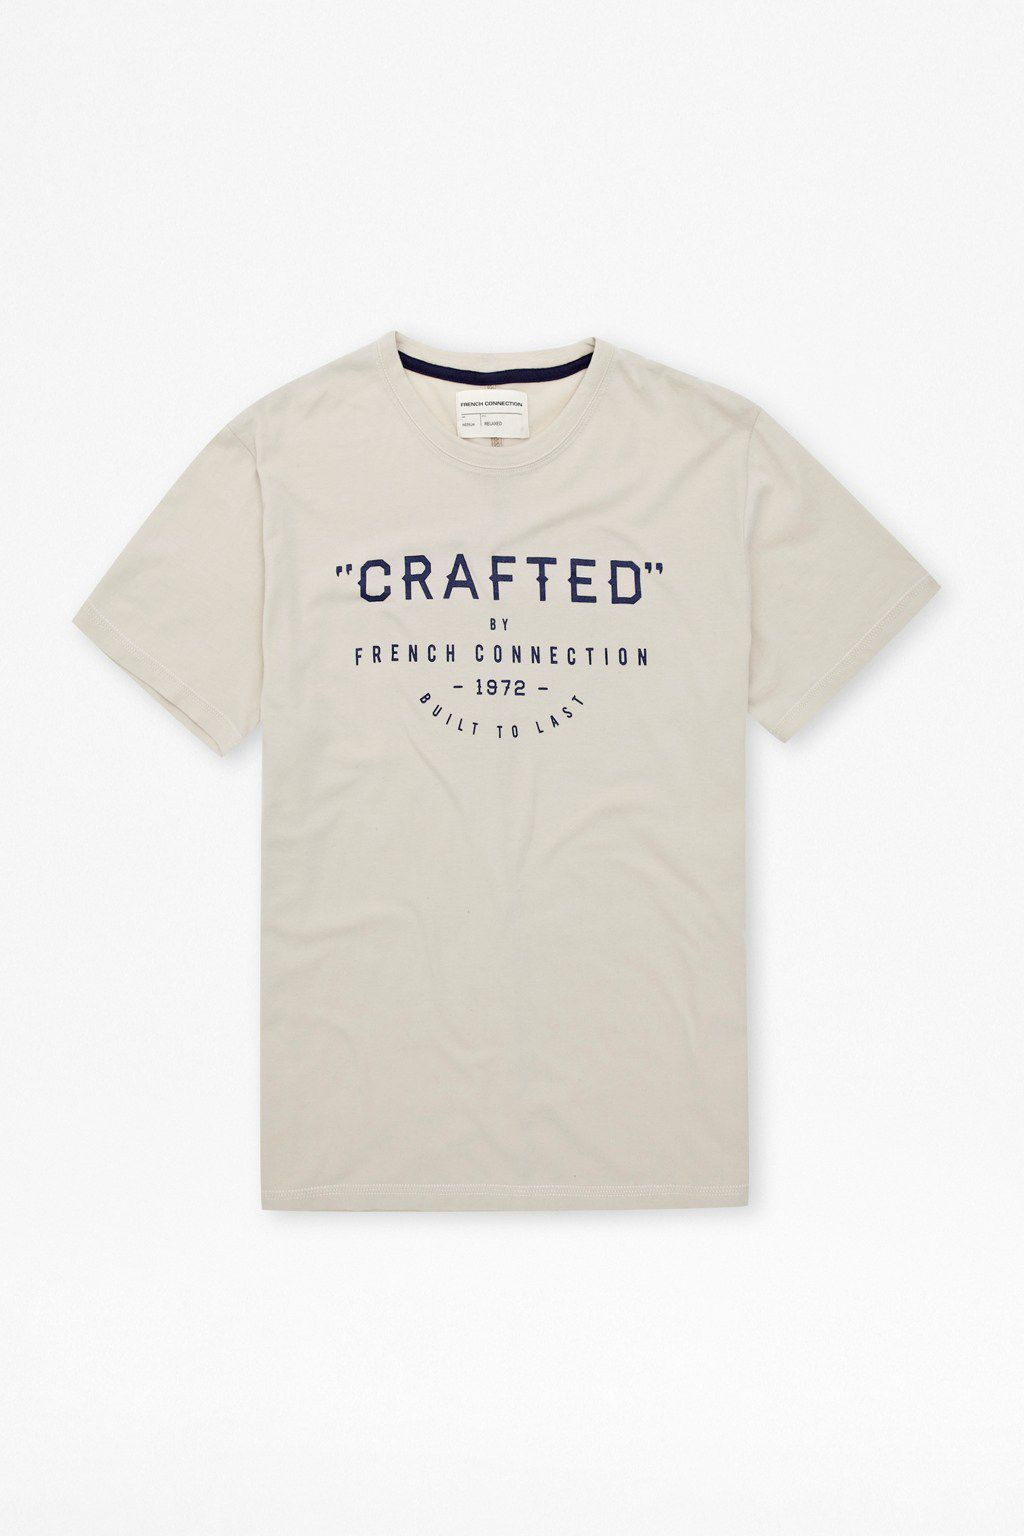 Crafted t shirt